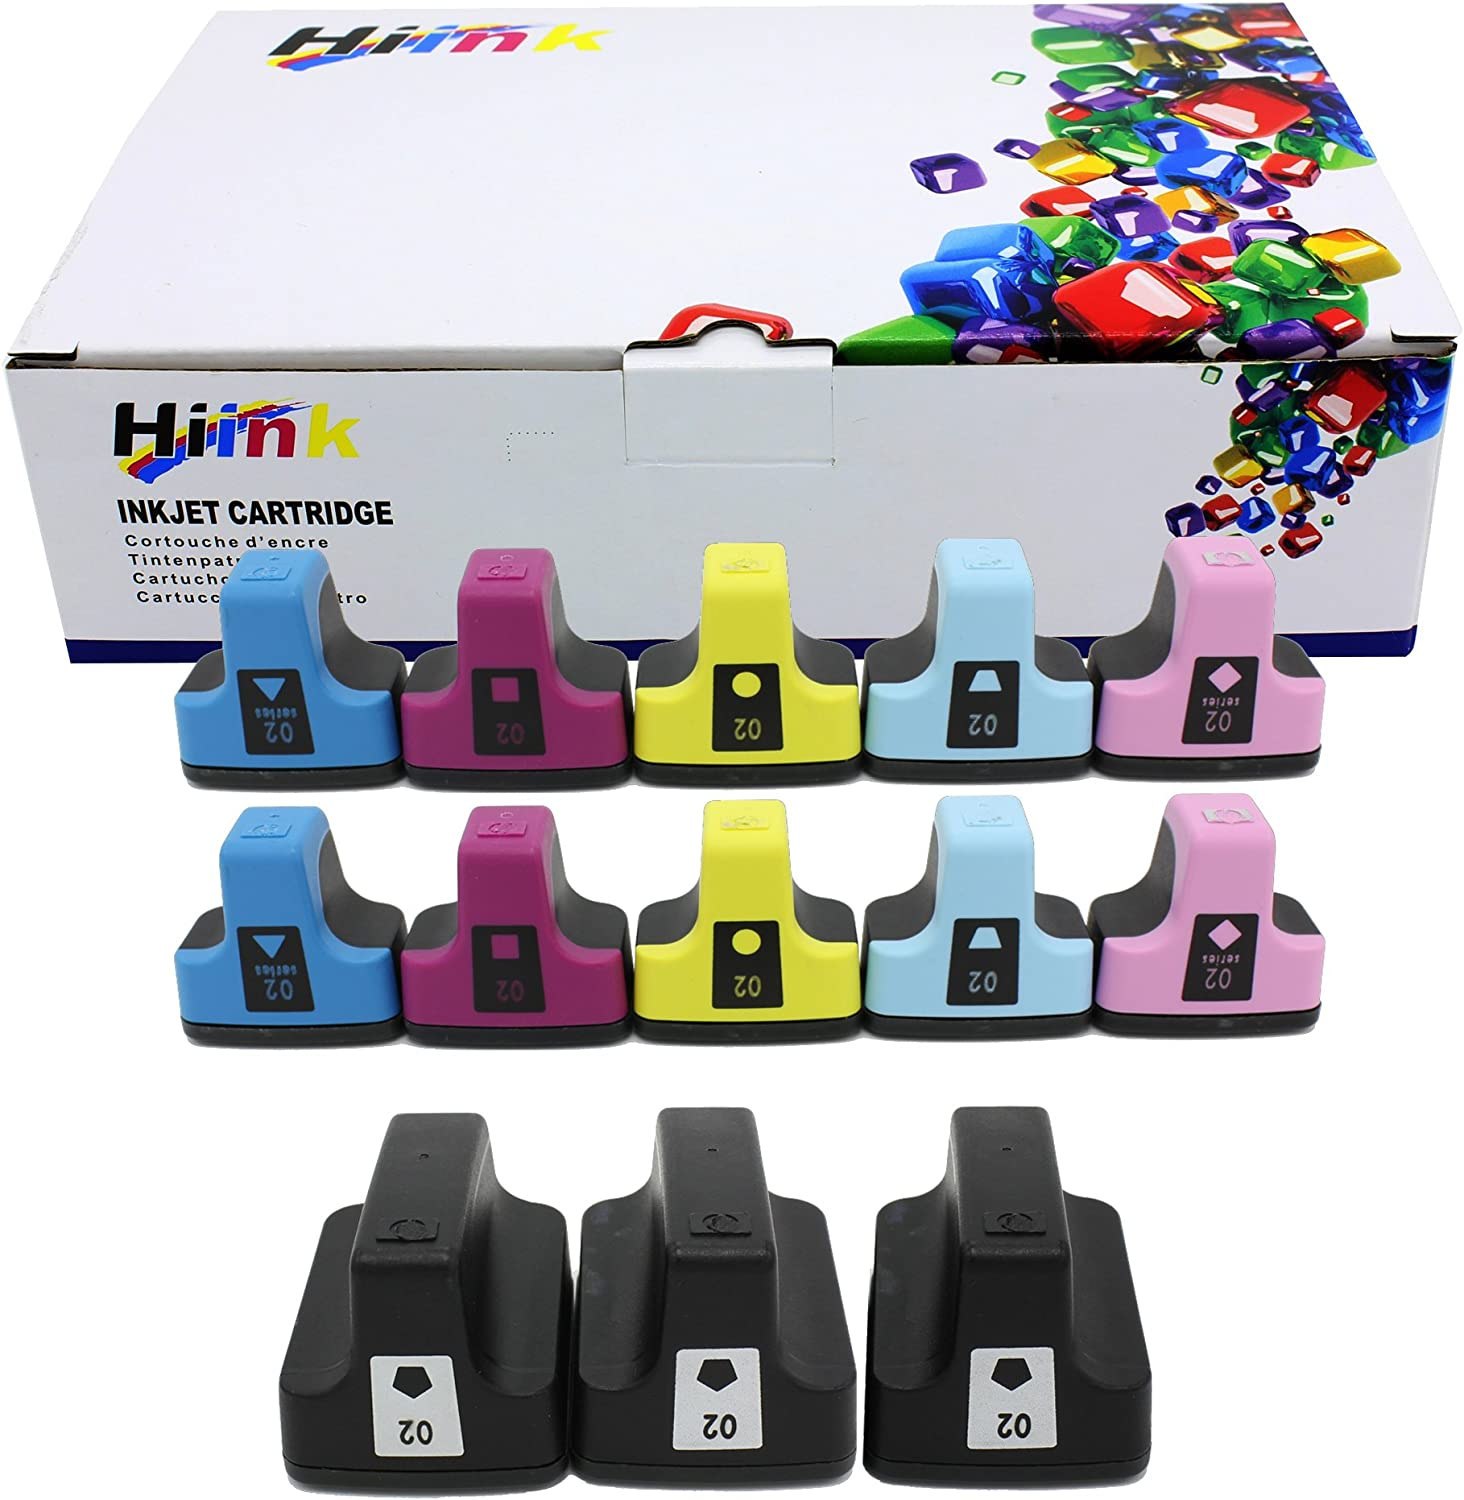 HIINK Remanufactured Ink Cartridge Replacement for HP 02 Ink Cartridges(3Black, 2Cyan, 2Magenta, 2Yellow, 2 Lt.Cyan, 2 Lt.Magenta. 13-Pack)